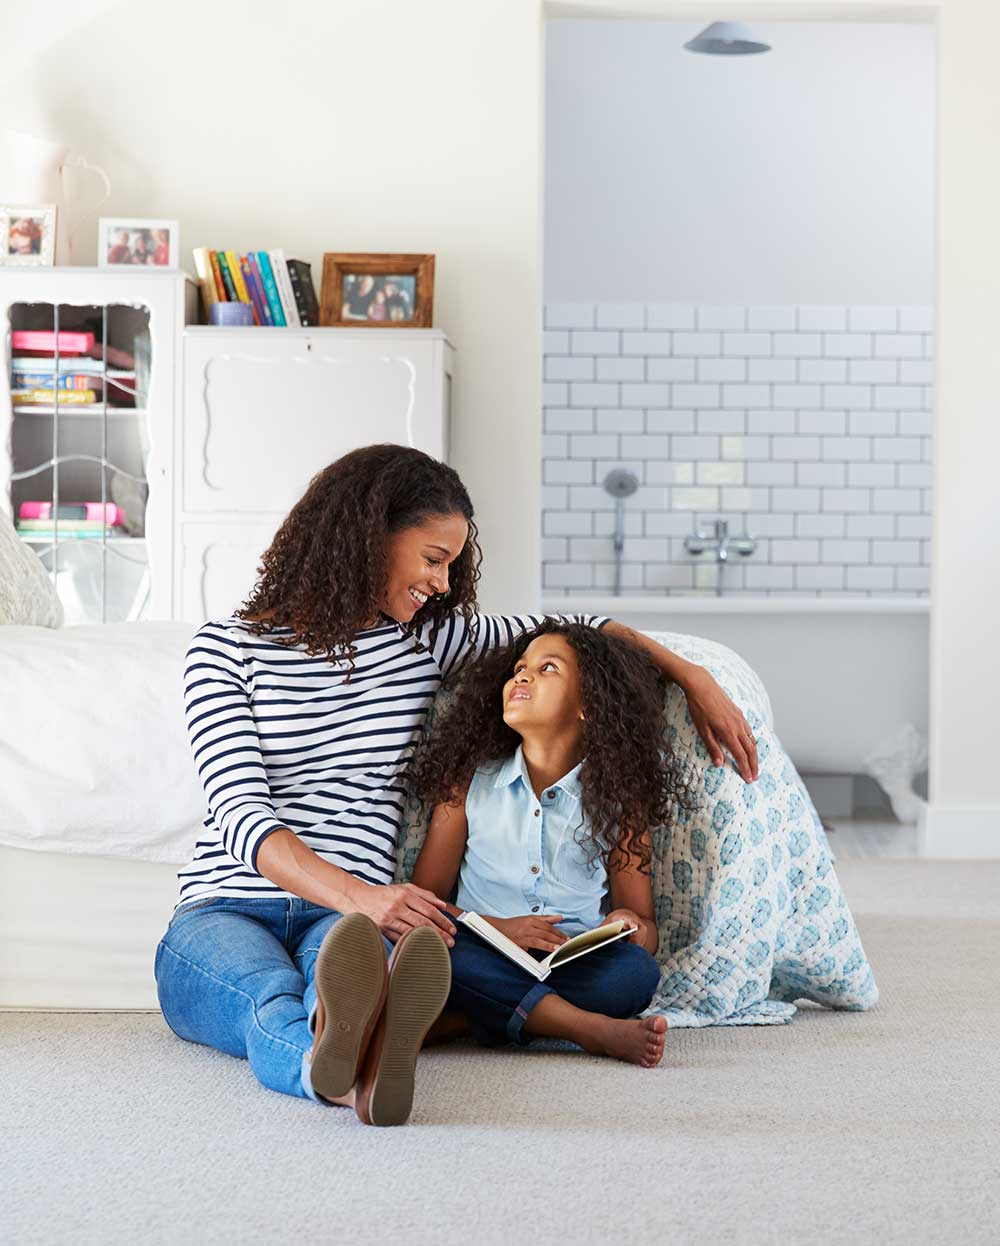 PrimeWay Home Equity Line of Credit Features